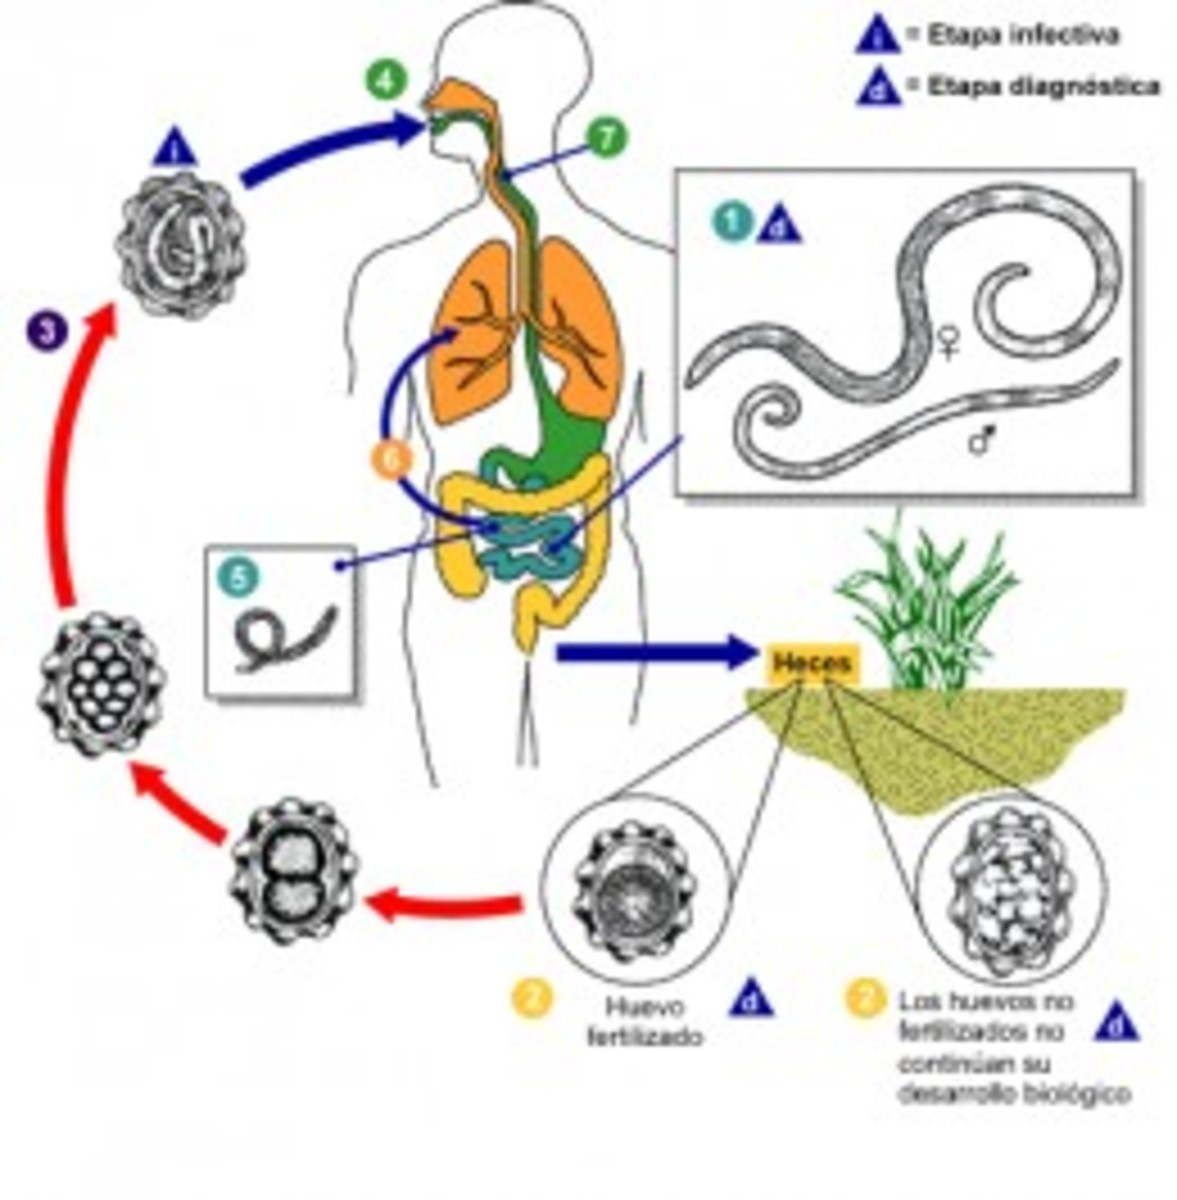 The life cycle of ascariasis worm.